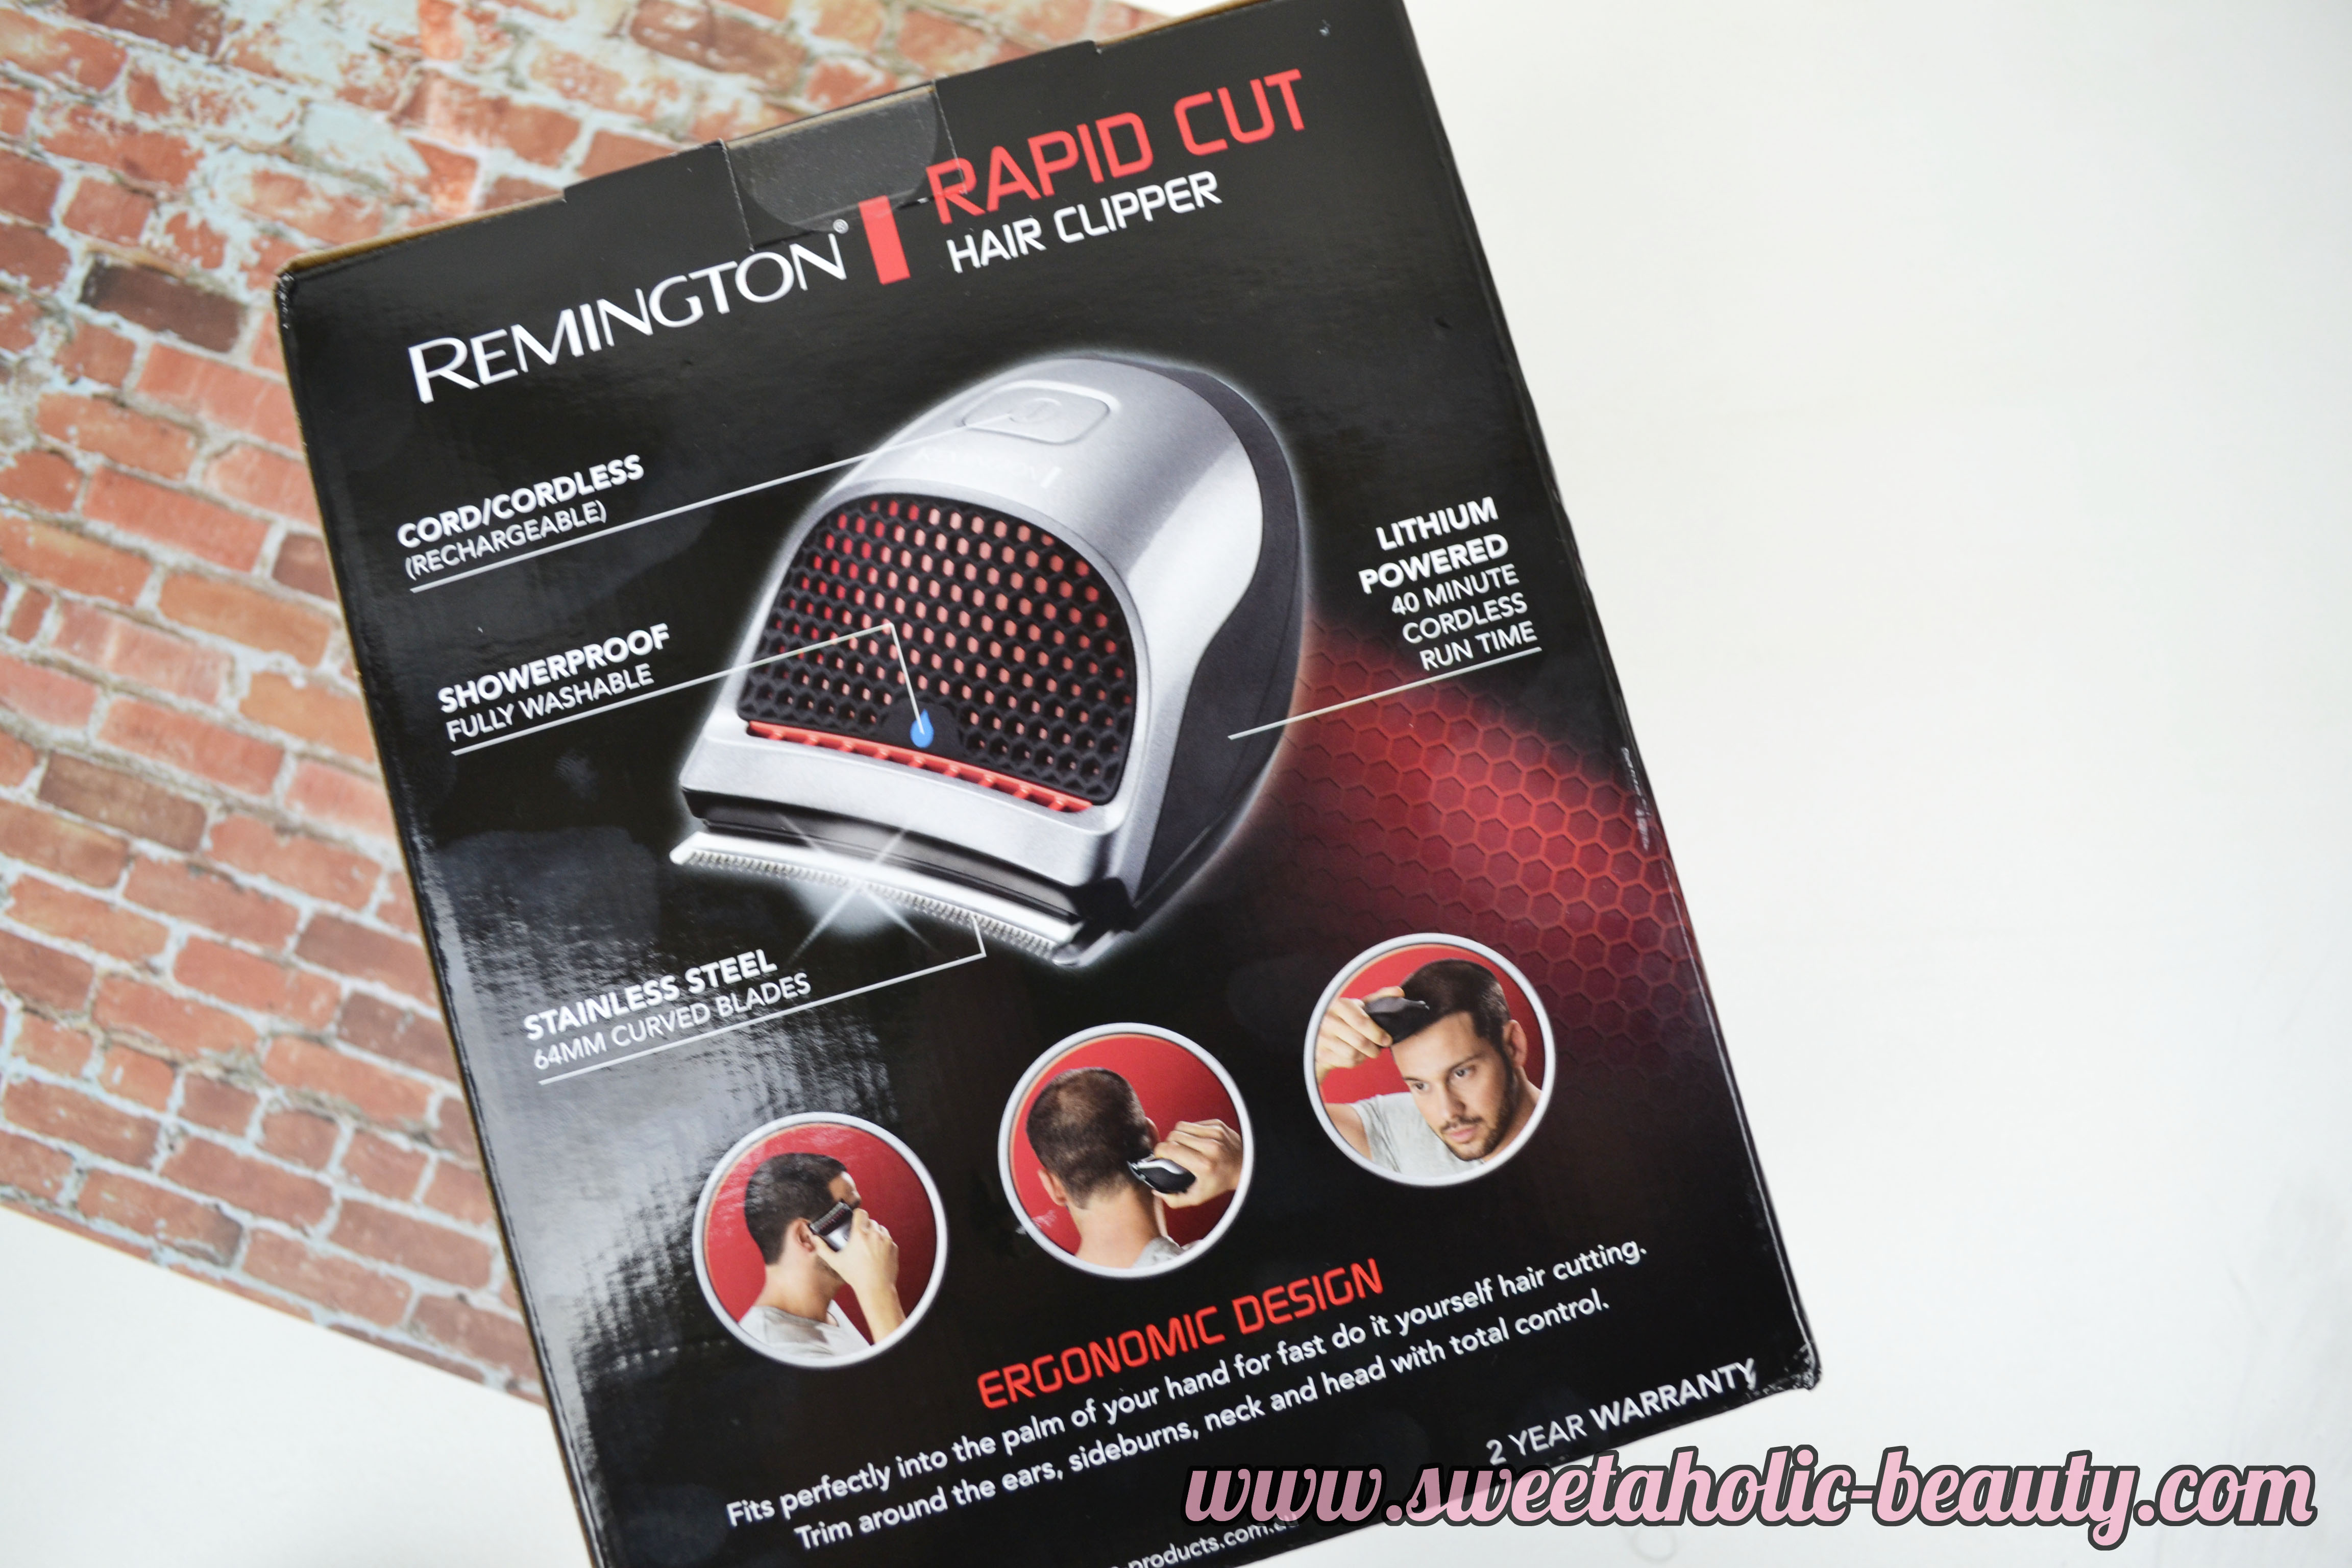 Remington Rapid Cut Hair Clipper Review - Sweetaholic Beauty